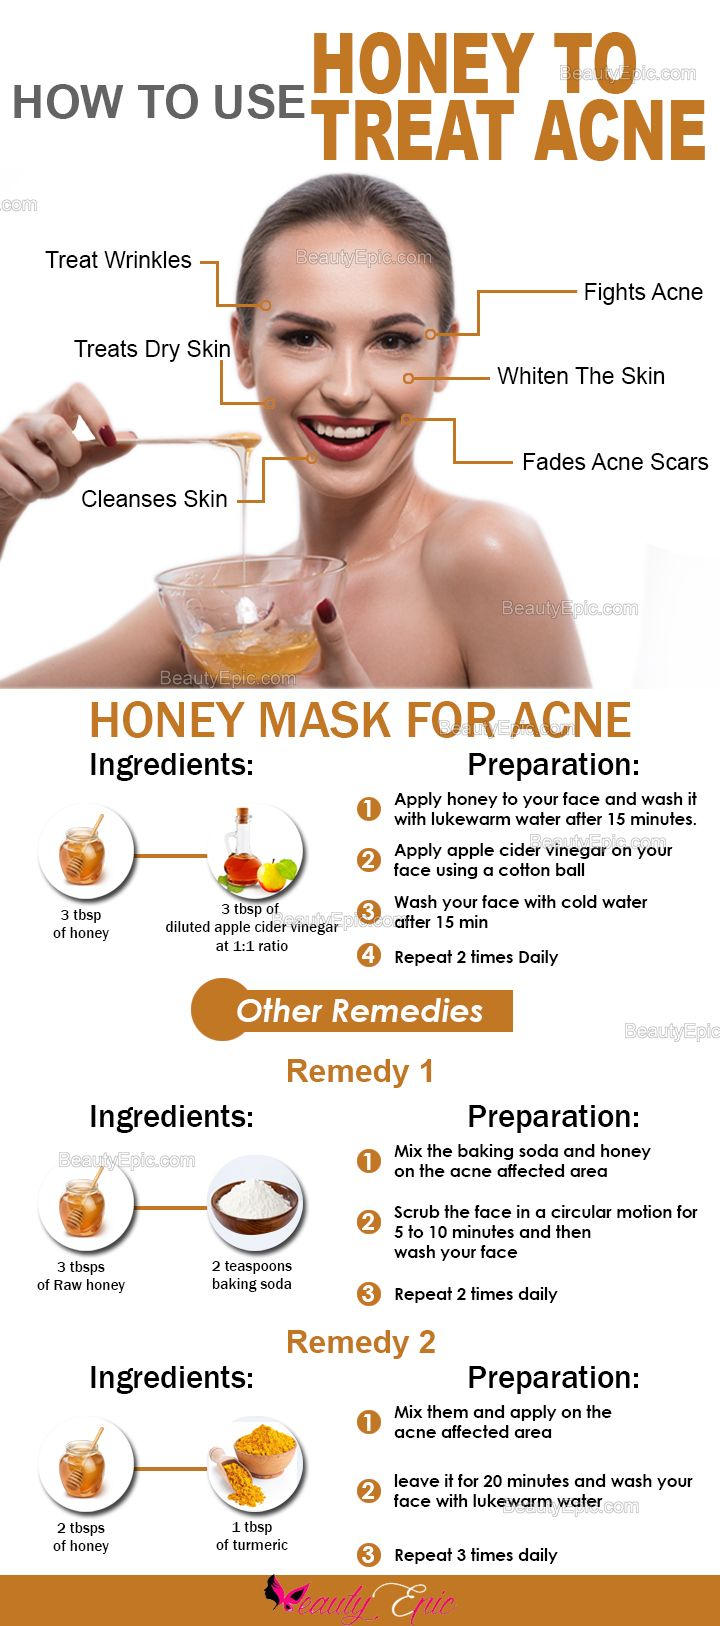 7 Effective Ways To Get Rid Of Acne With Honey How To Treat Acne Honey For Acne Acne